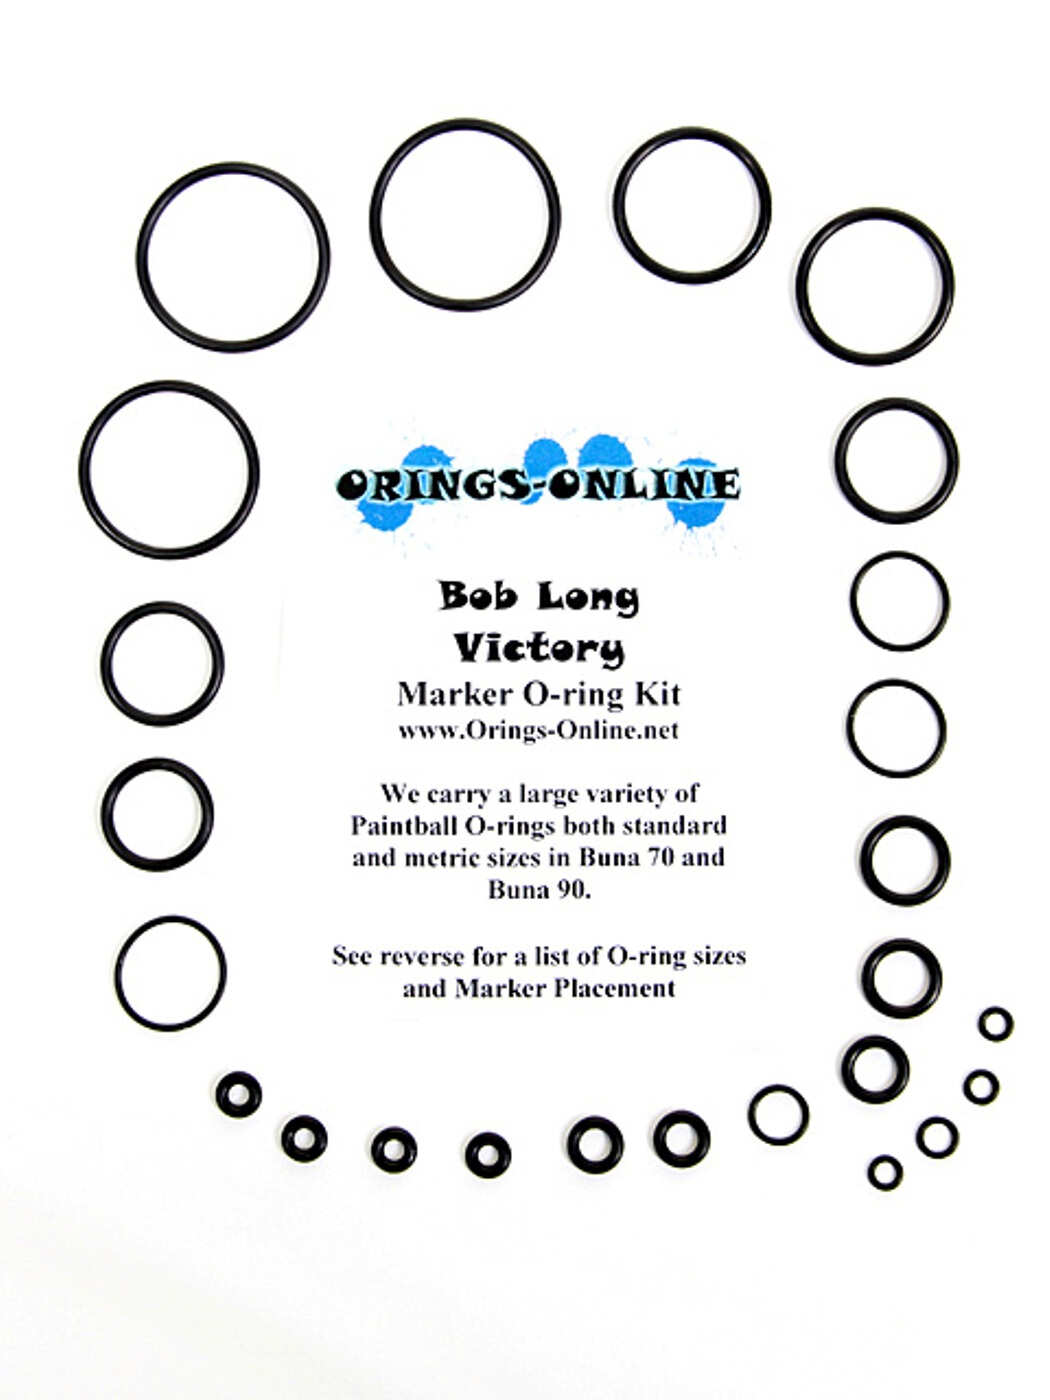 Bob Long Victory Marker O-ring Kit